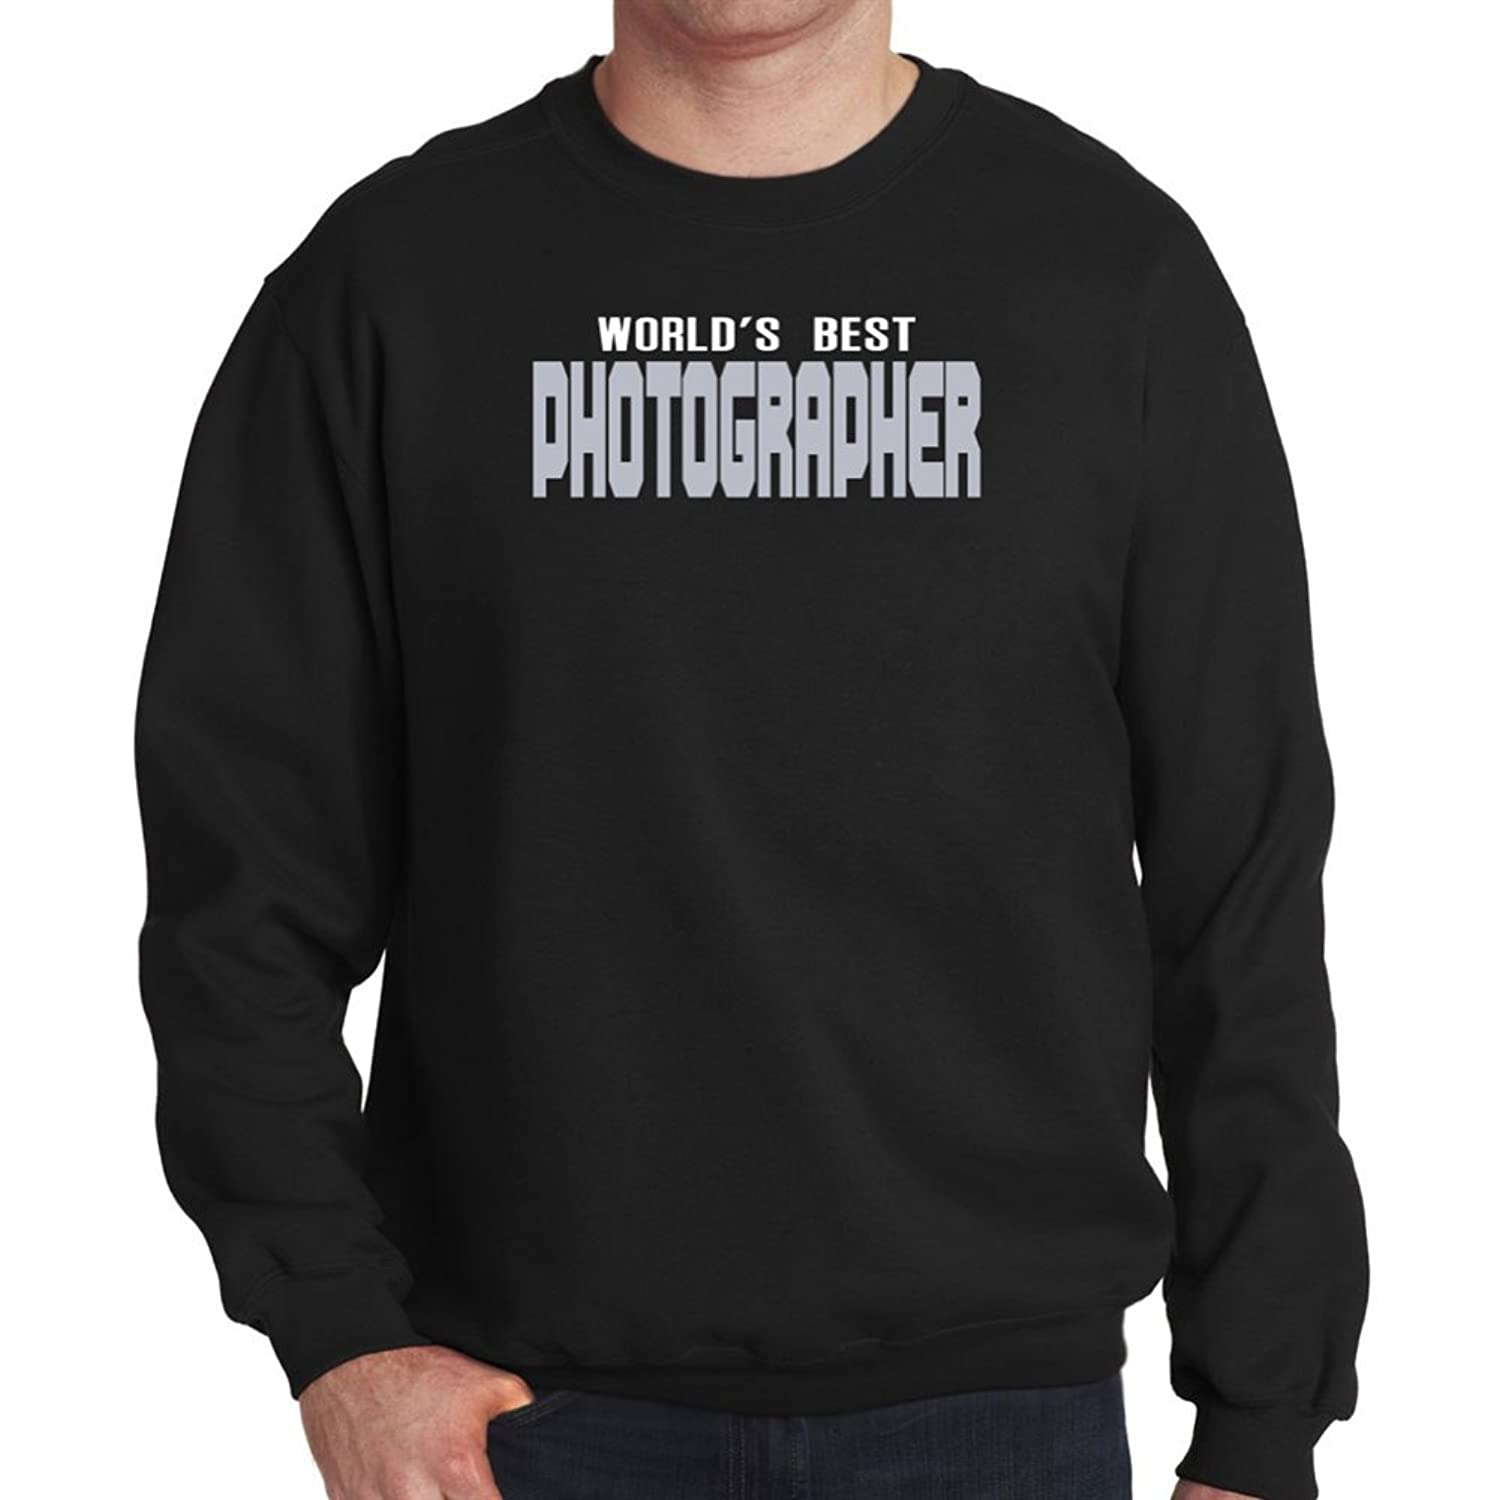 WORLD'S BEST Photographer Sweatshirt